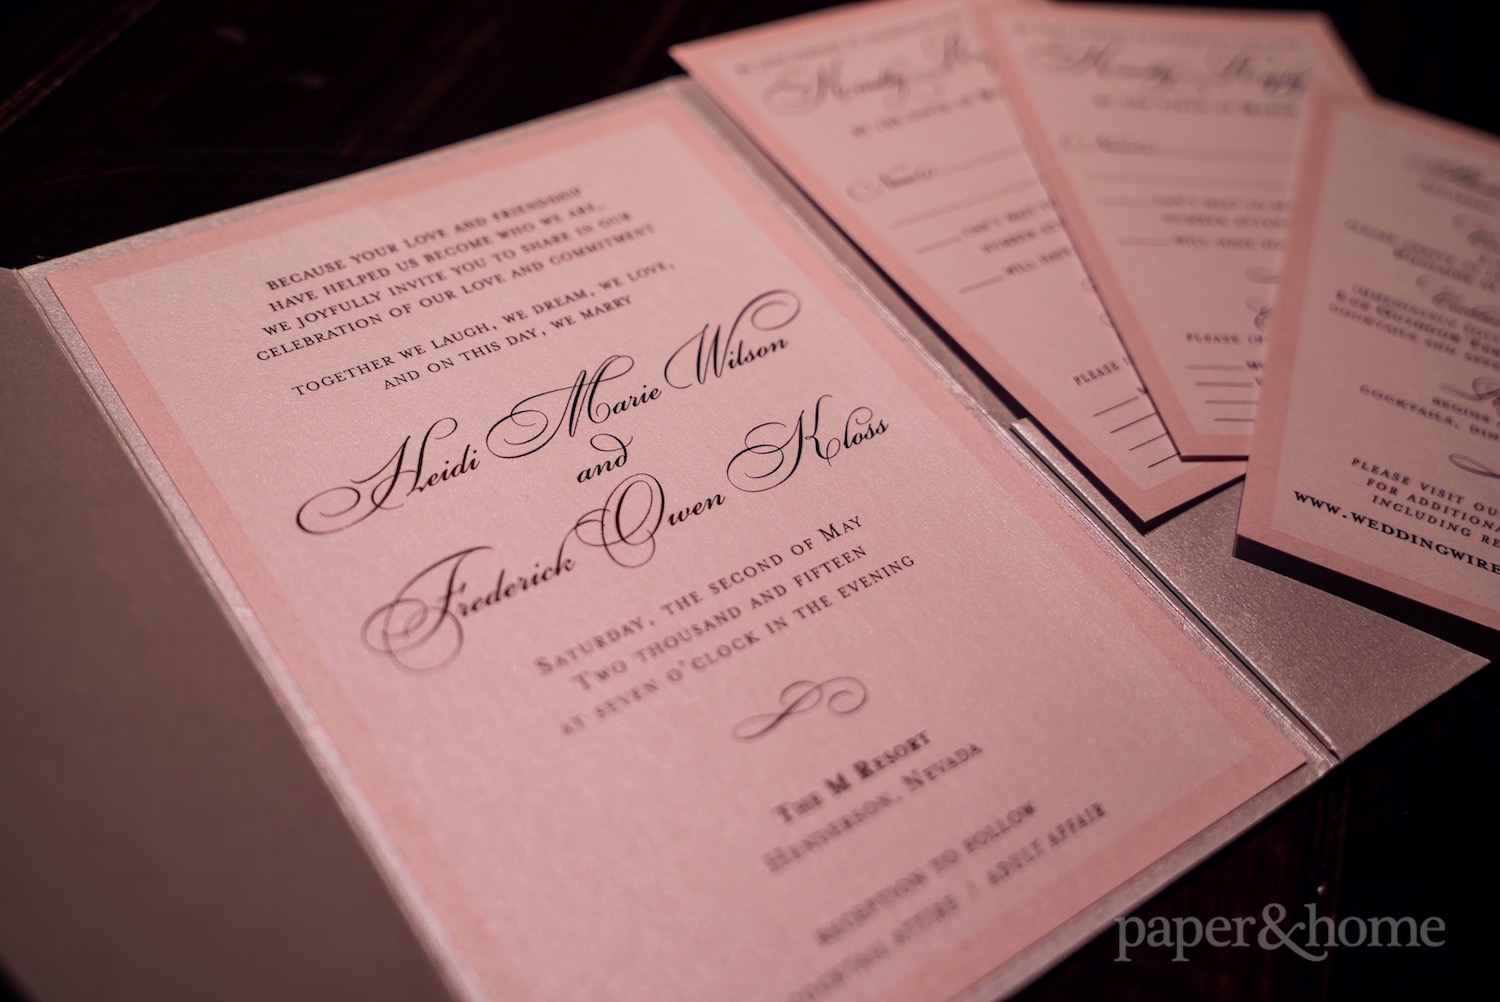 Classic Wedding Invitations: Heidi and Frederick - Paper and Home